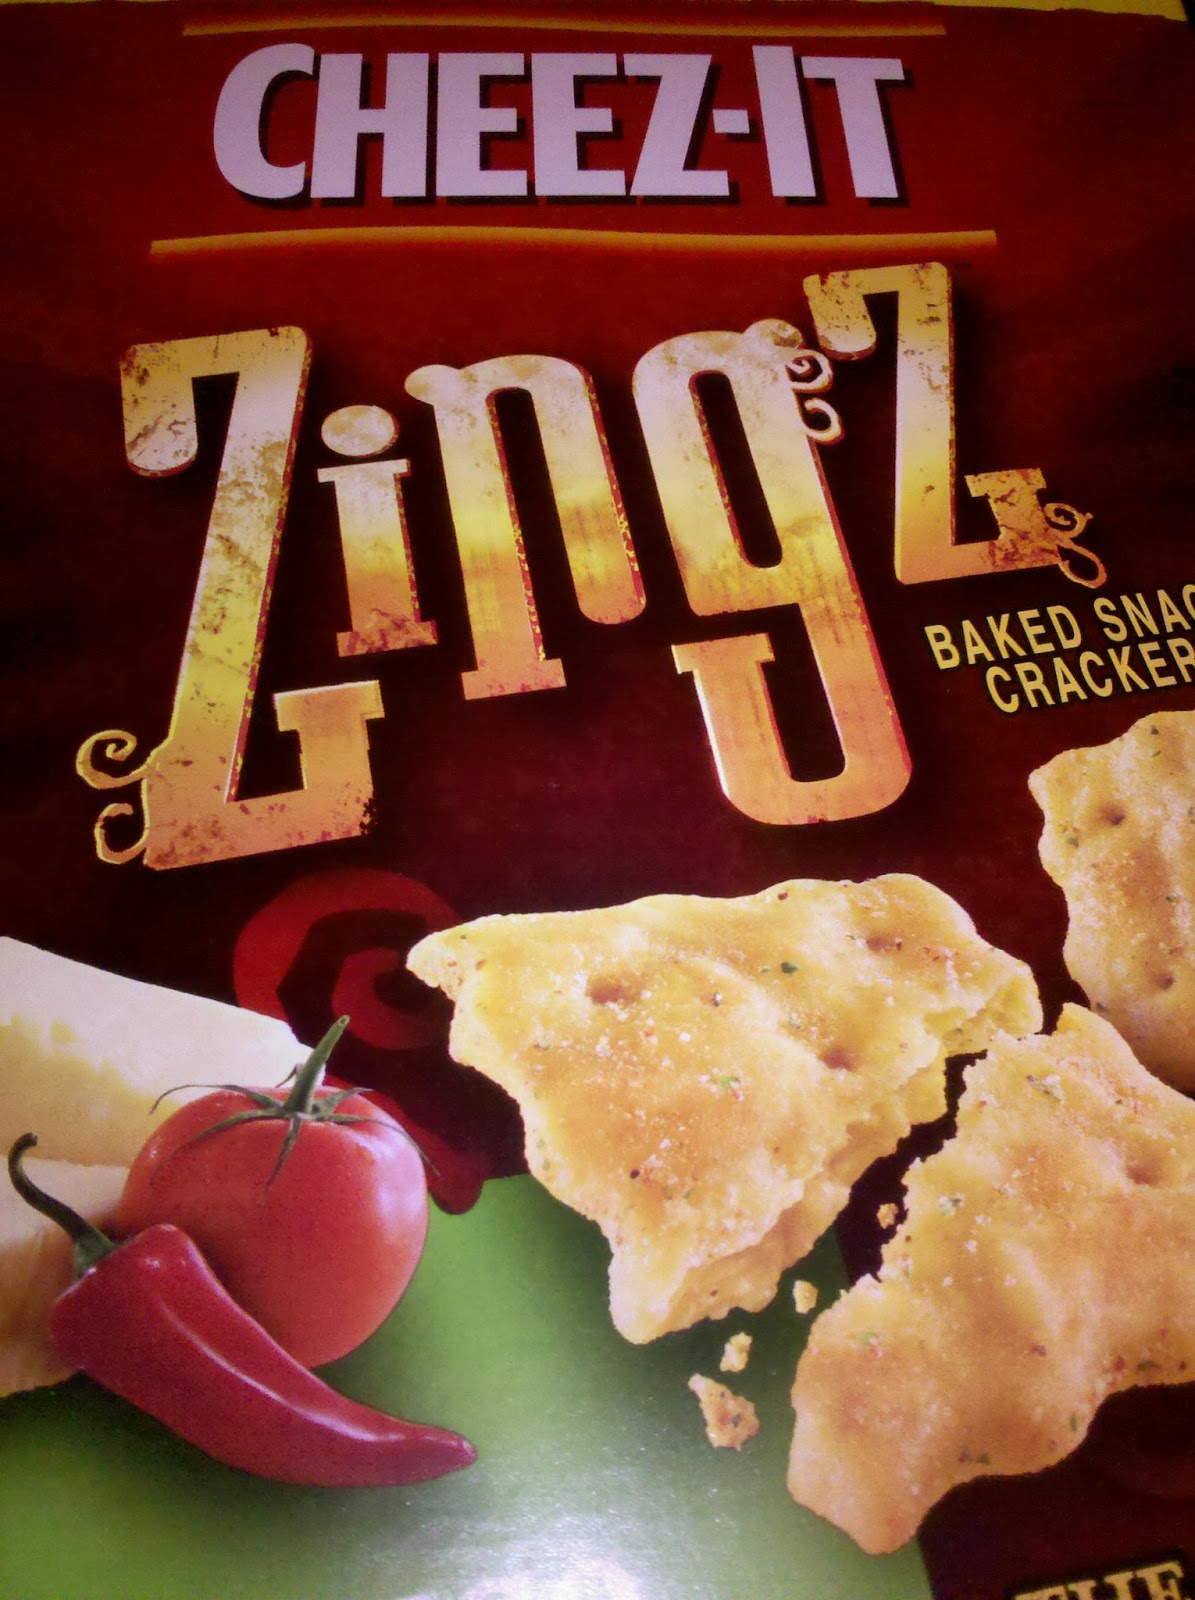 rockville nights cheezit zingz review chipotle cheddar